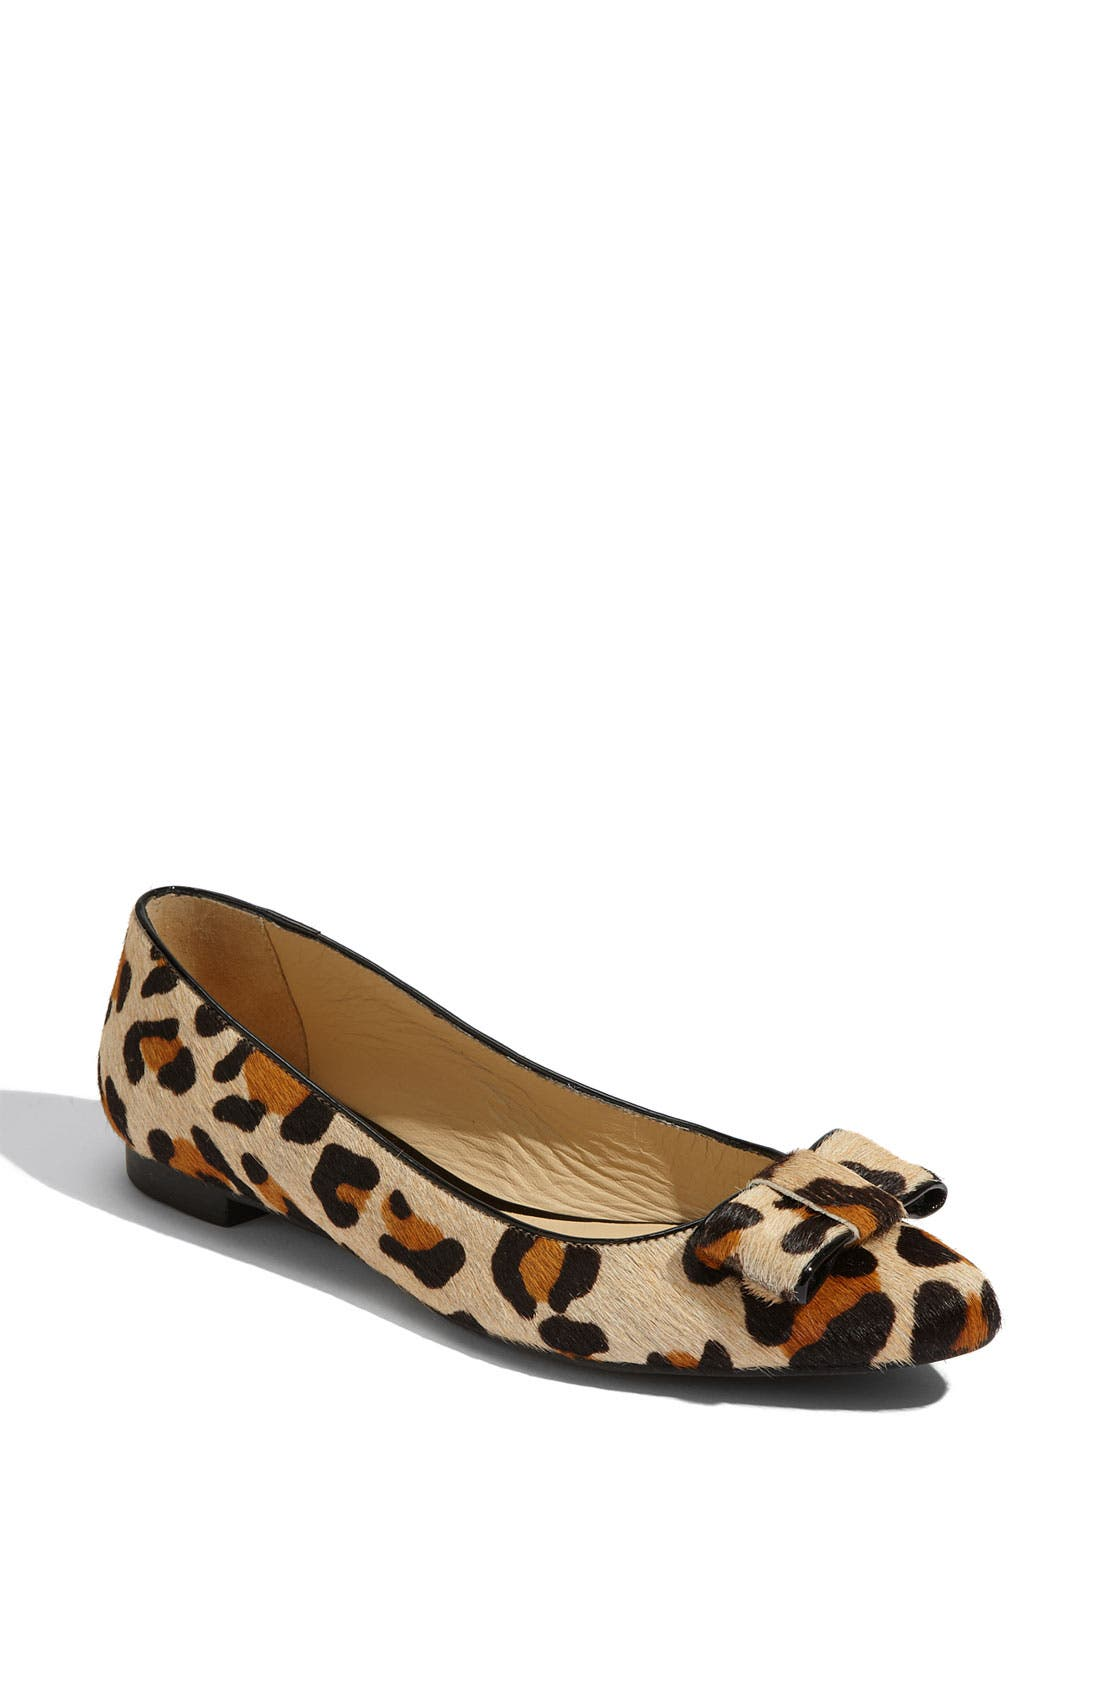 'elise' leopard print calf hair flat,                         Main,                         color, Large Leopard Printed